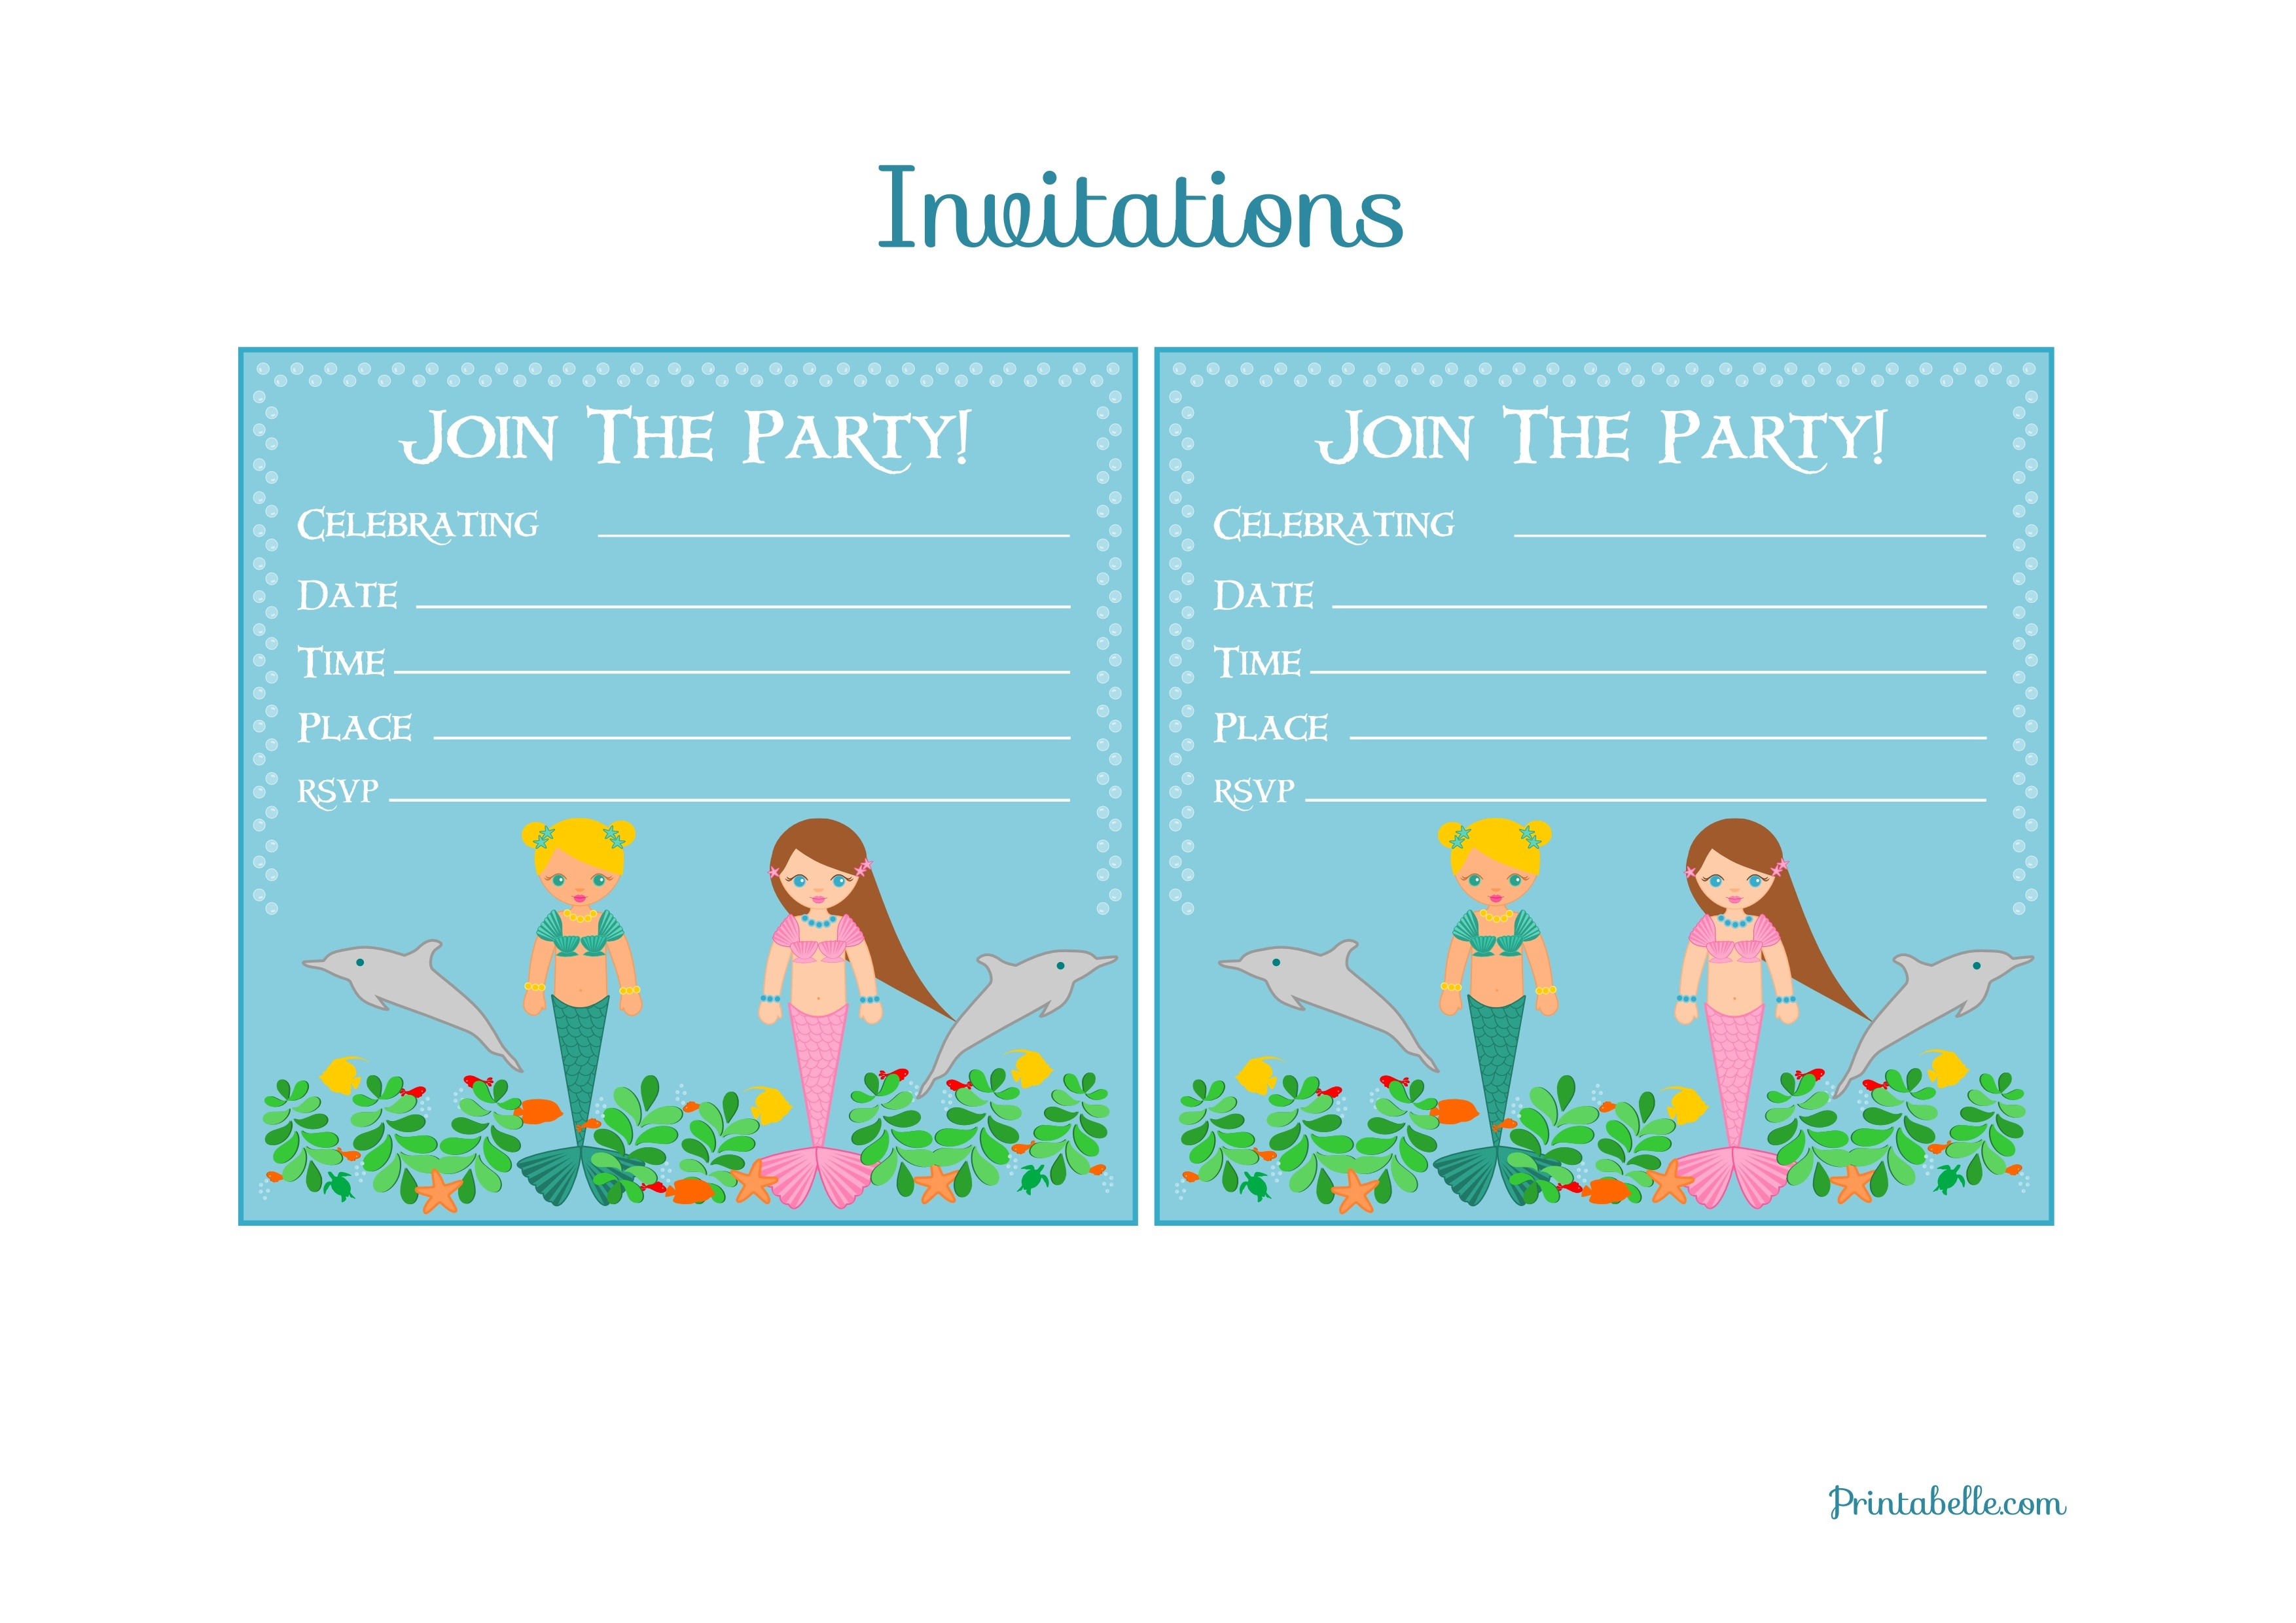 Free Mermaid Birthday Party Printables From Printabelle | Catch My Party - Mermaid Party Invitations Printable Free